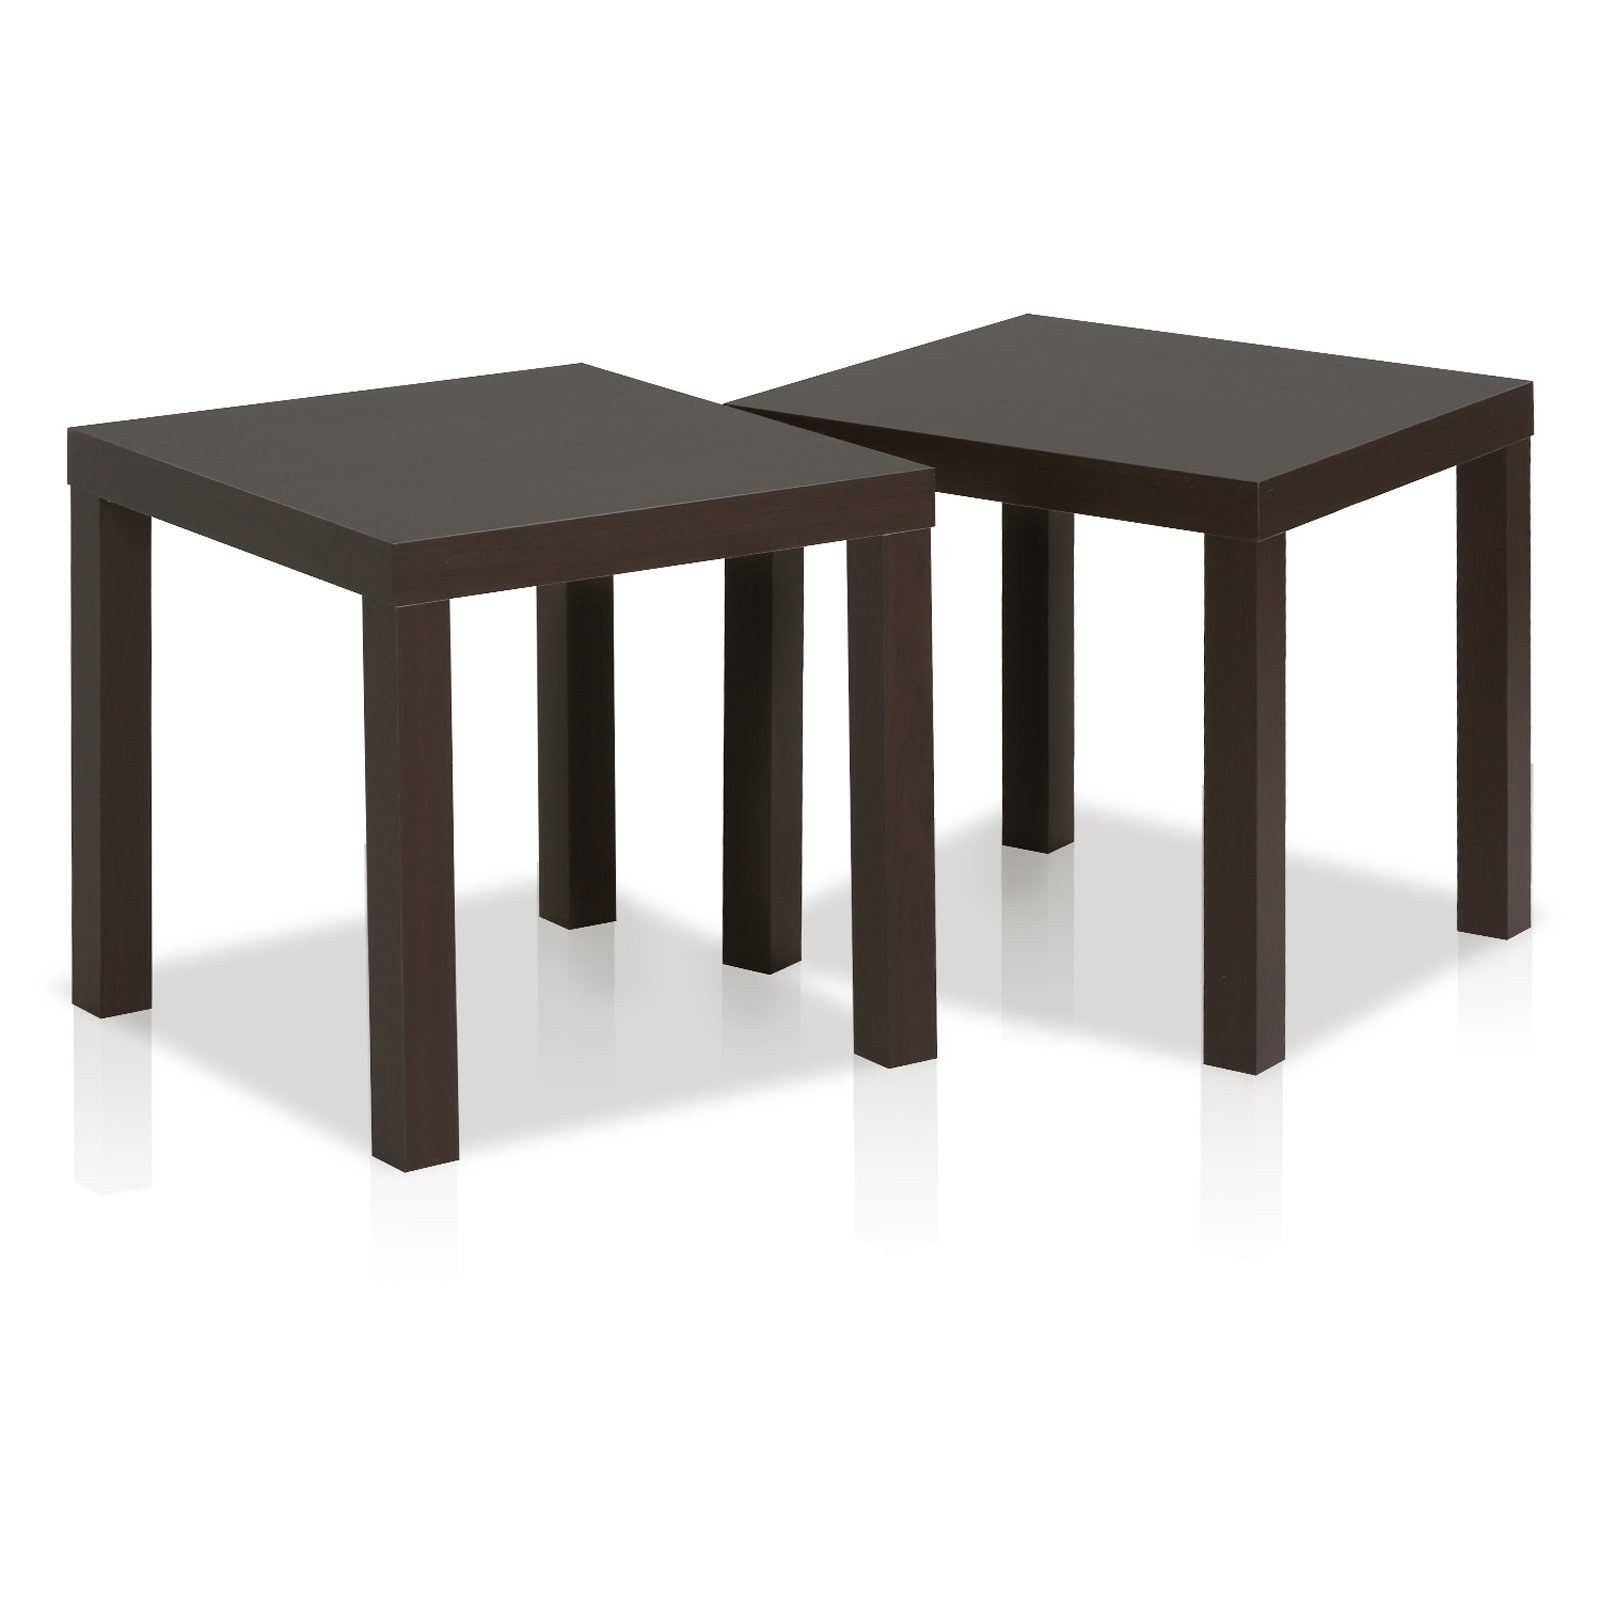 Furinno Classic Cubic End Table, Set of 2, Espresso by Furinno